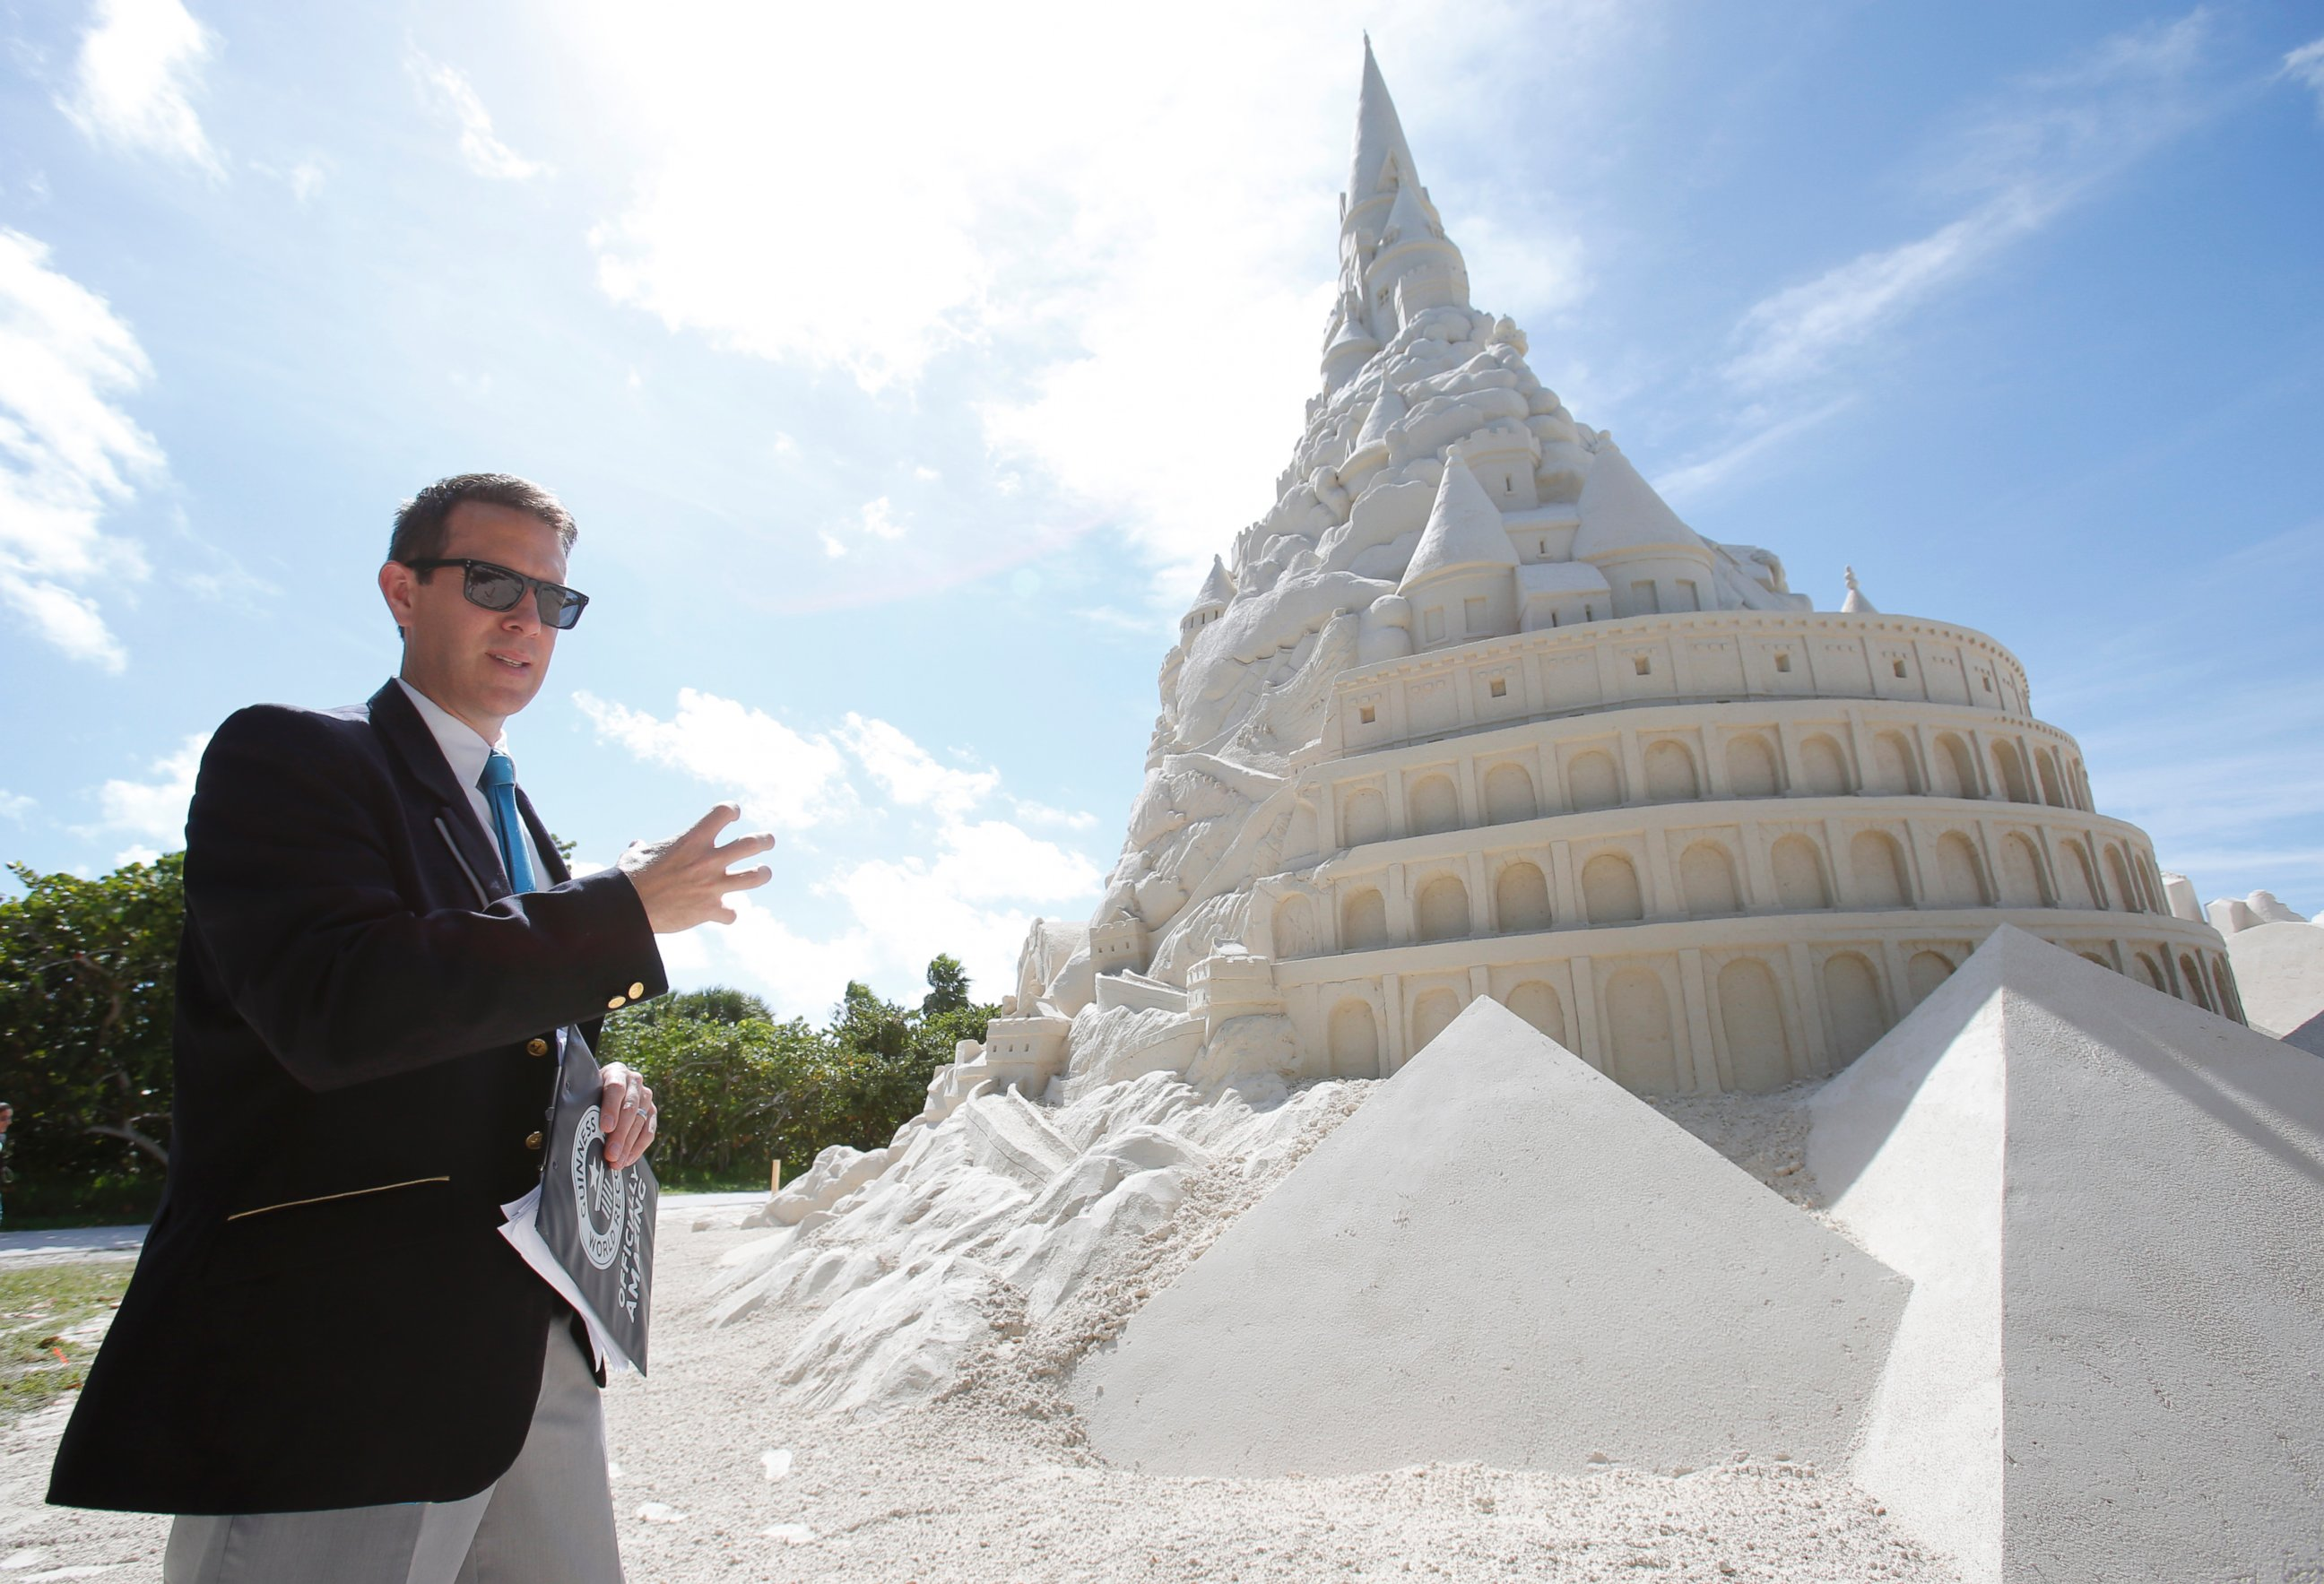 photo guinness world records limited adjudicator philip robertson explains the criteria needed for a record attempt to build the tallest sand castle